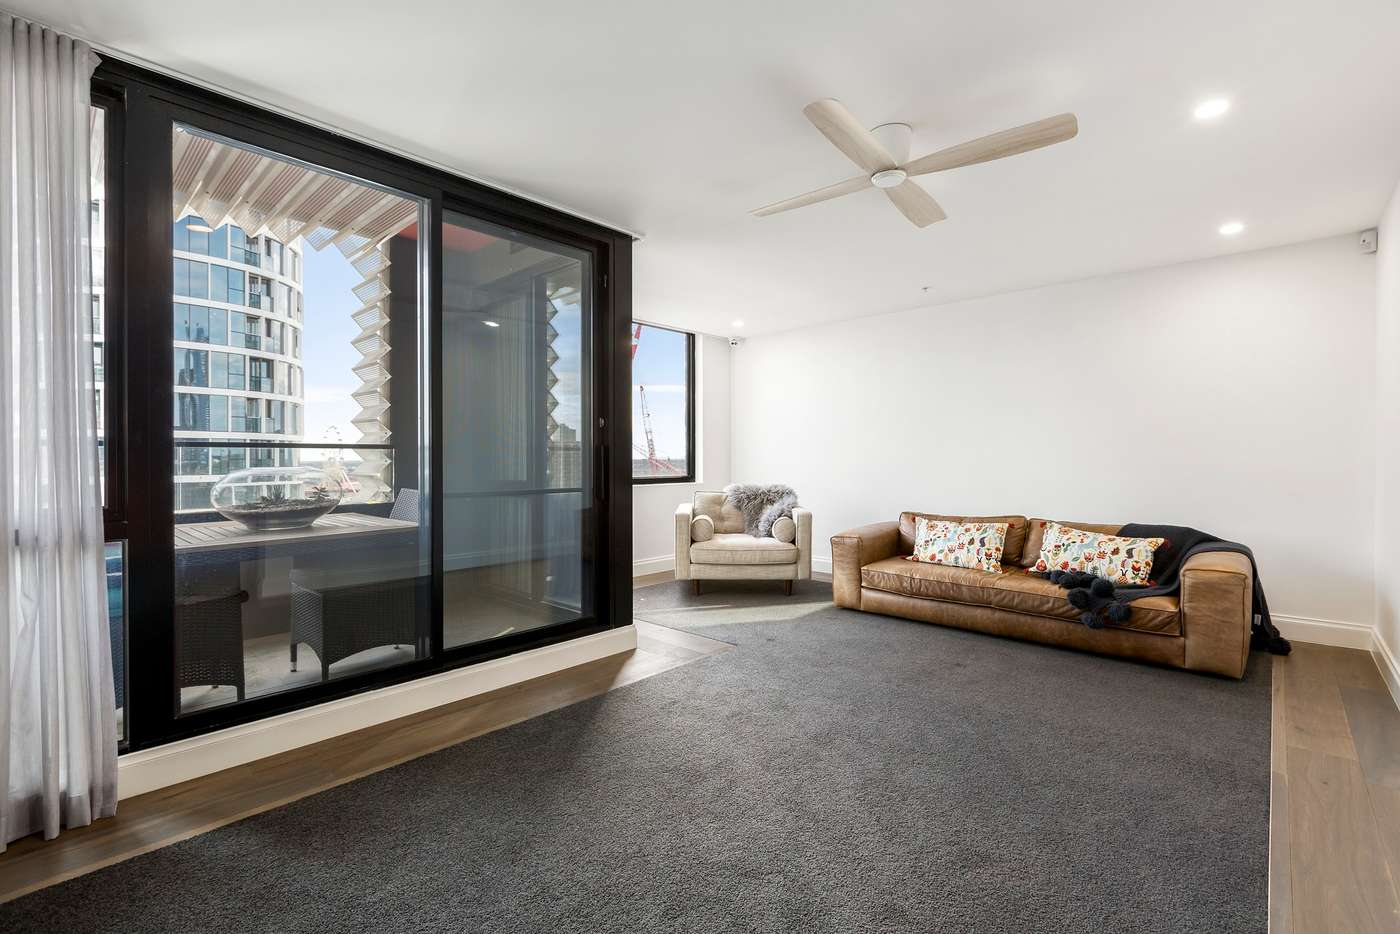 Sixth view of Homely apartment listing, 388 Spencer Street, Melbourne VIC 3000